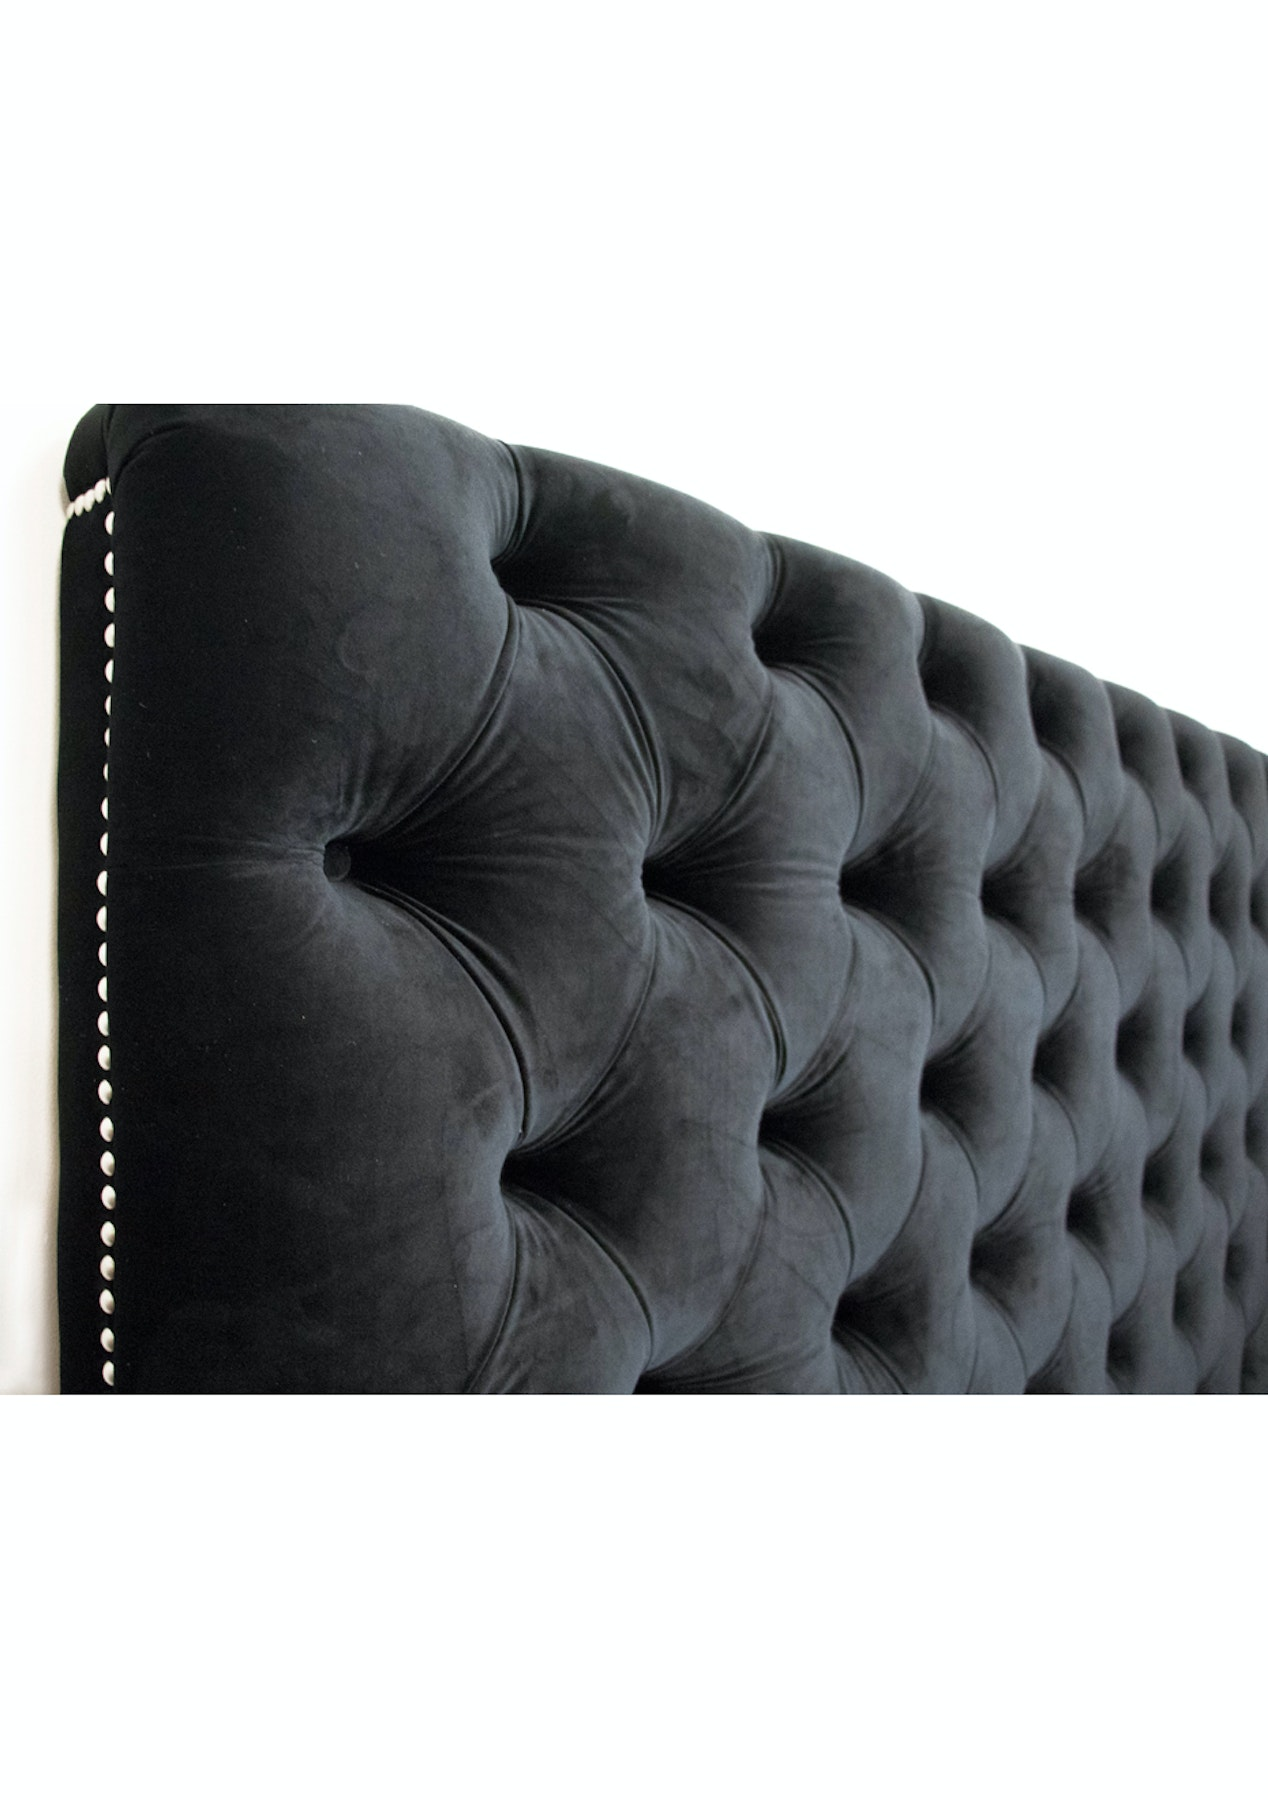 uk handmade iona in beds online bespoke winged crushed upholstered workshop velvet headboard buy headboards high this black pin and the